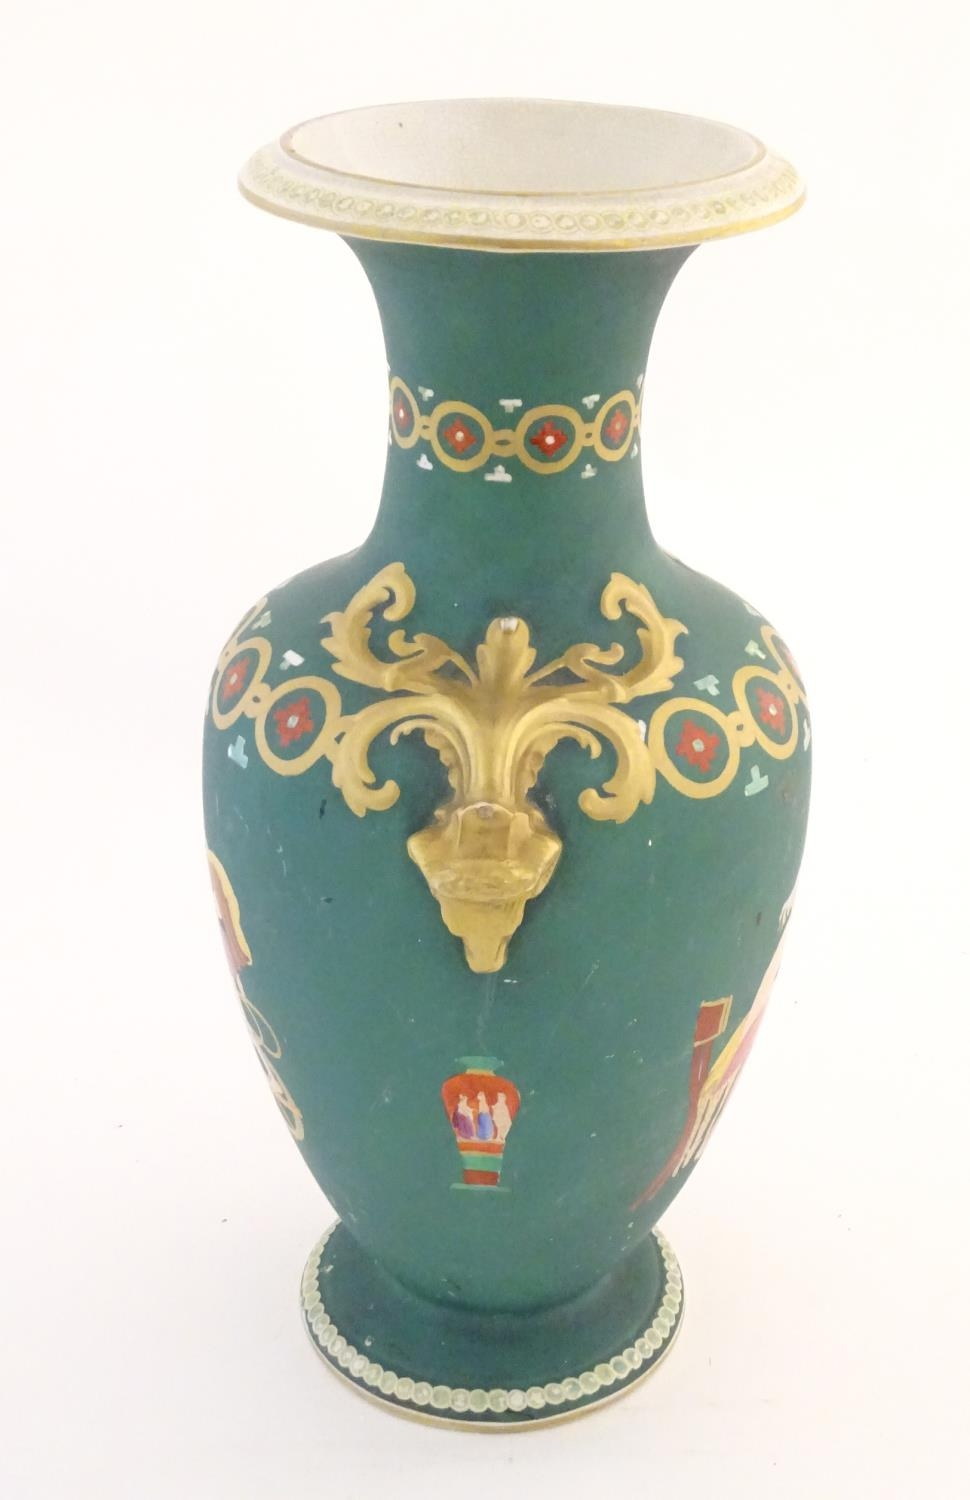 A Prattware baluster vase with Classical decoration depicting a Roman gladiator and chariot etc. - Image 8 of 12